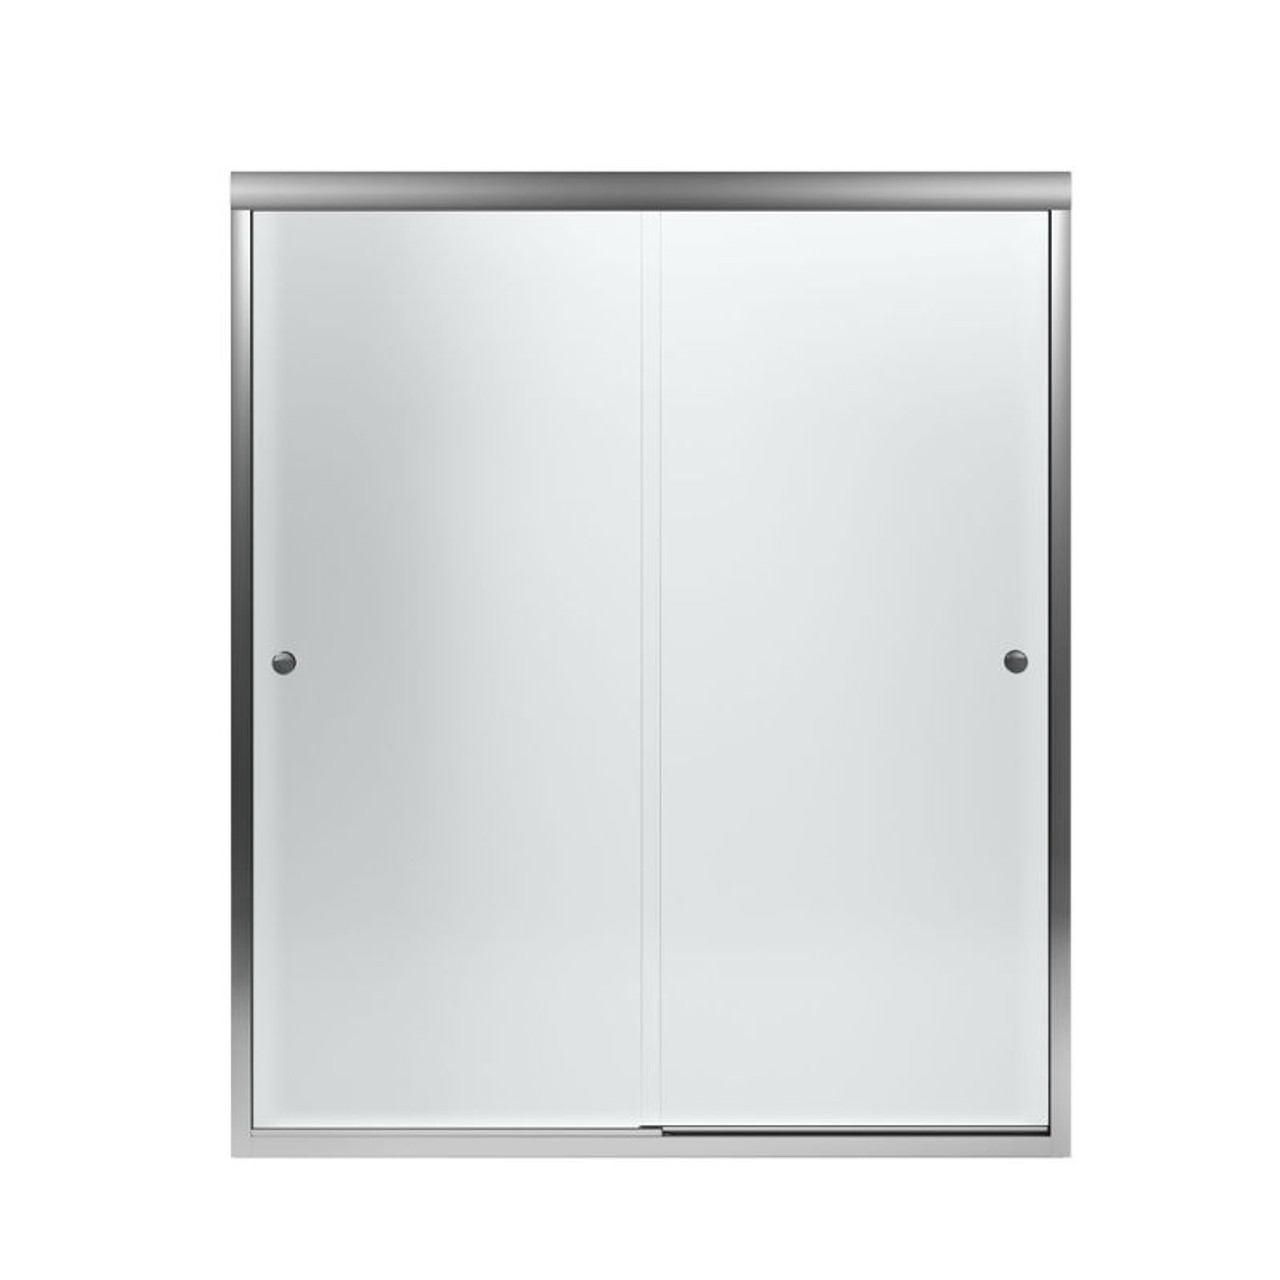 Sterling 5477 59s G03 Finesse 54 625 To 59 625 In X 70 0625 In Frameless Sliding Alcove Shower Door With Frosted Glass